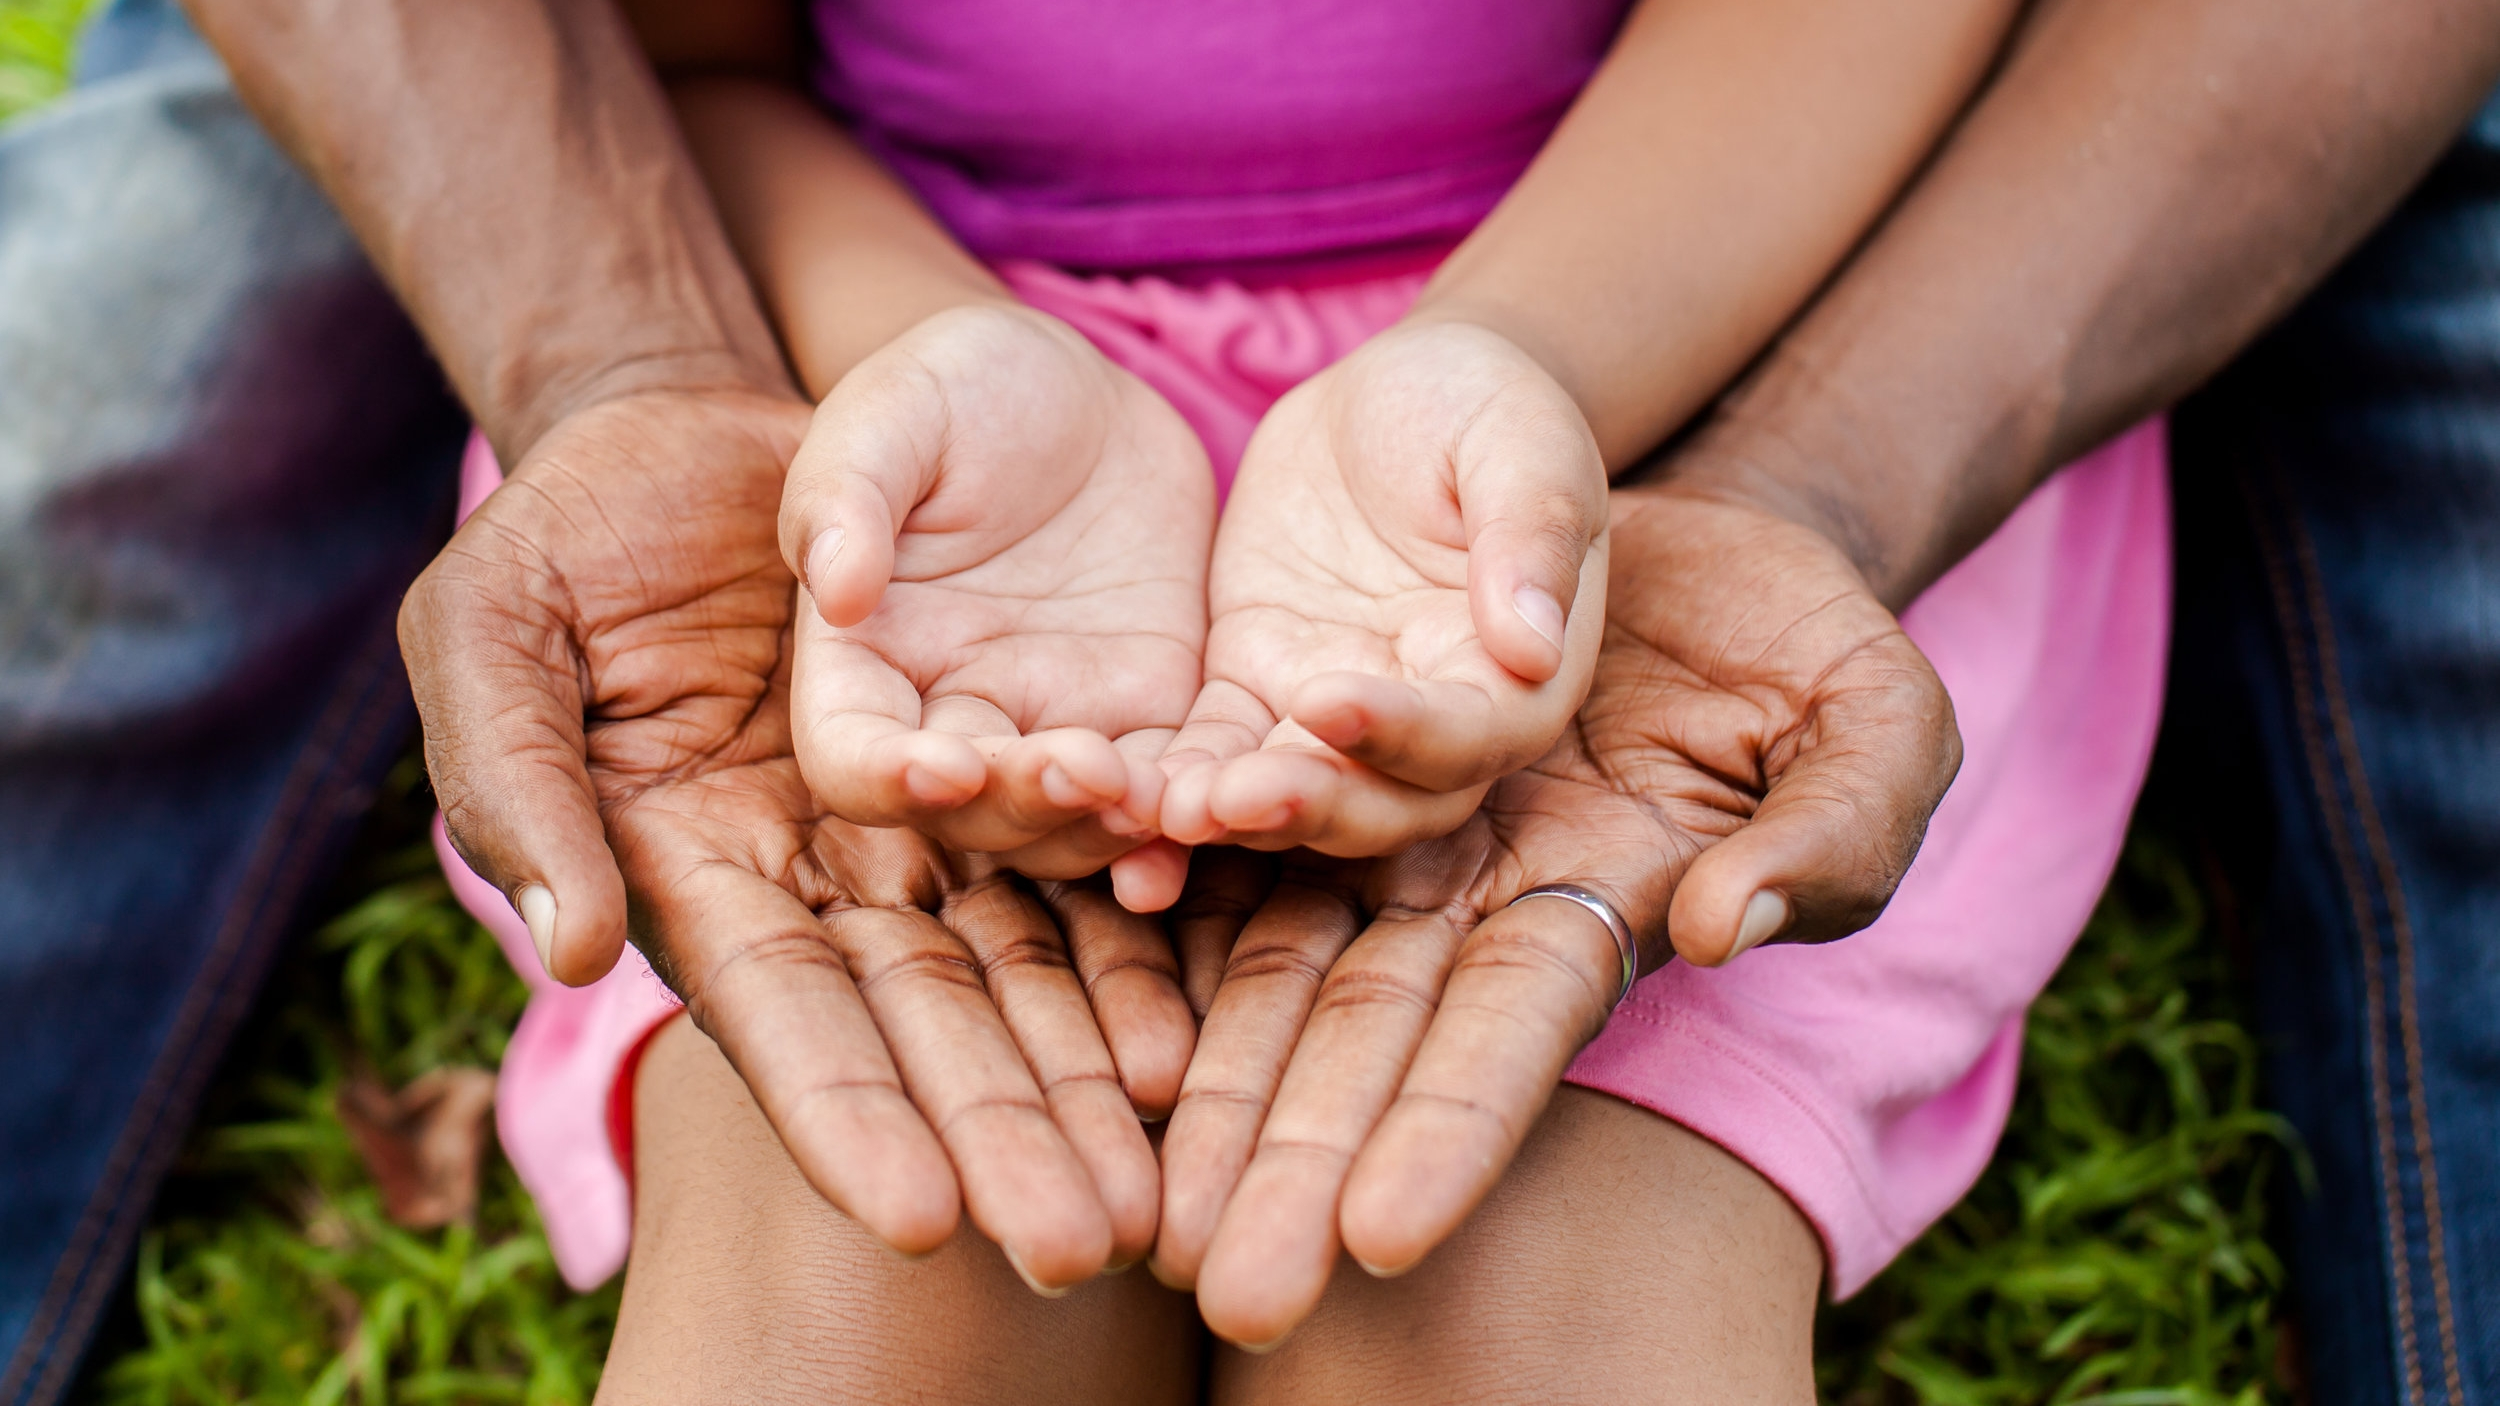 5_ShSt_ChildSupp_stock-photo-hands-of-family-together-in-green-park-family-unity-and-peace-concept-538785181.jpg